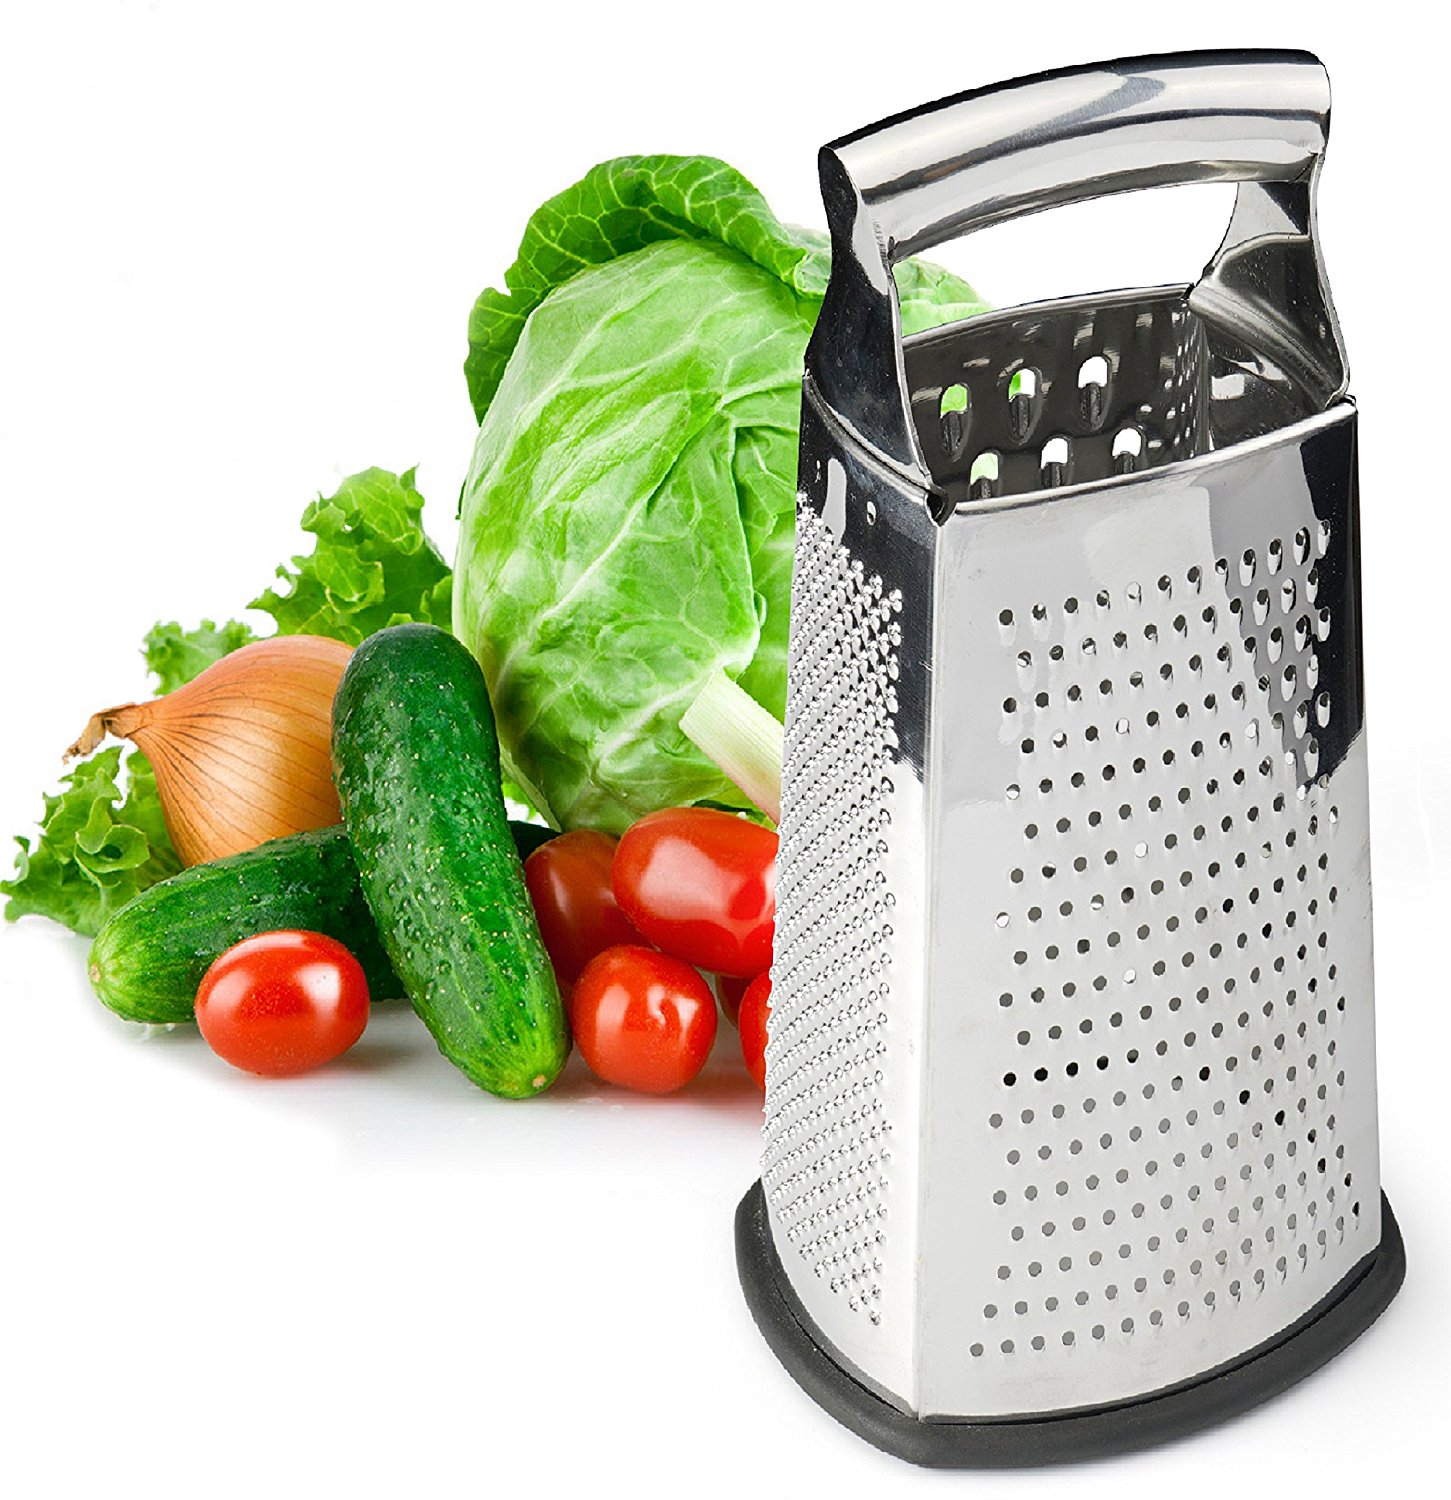 Spring Chef 4-Sided Box Grater